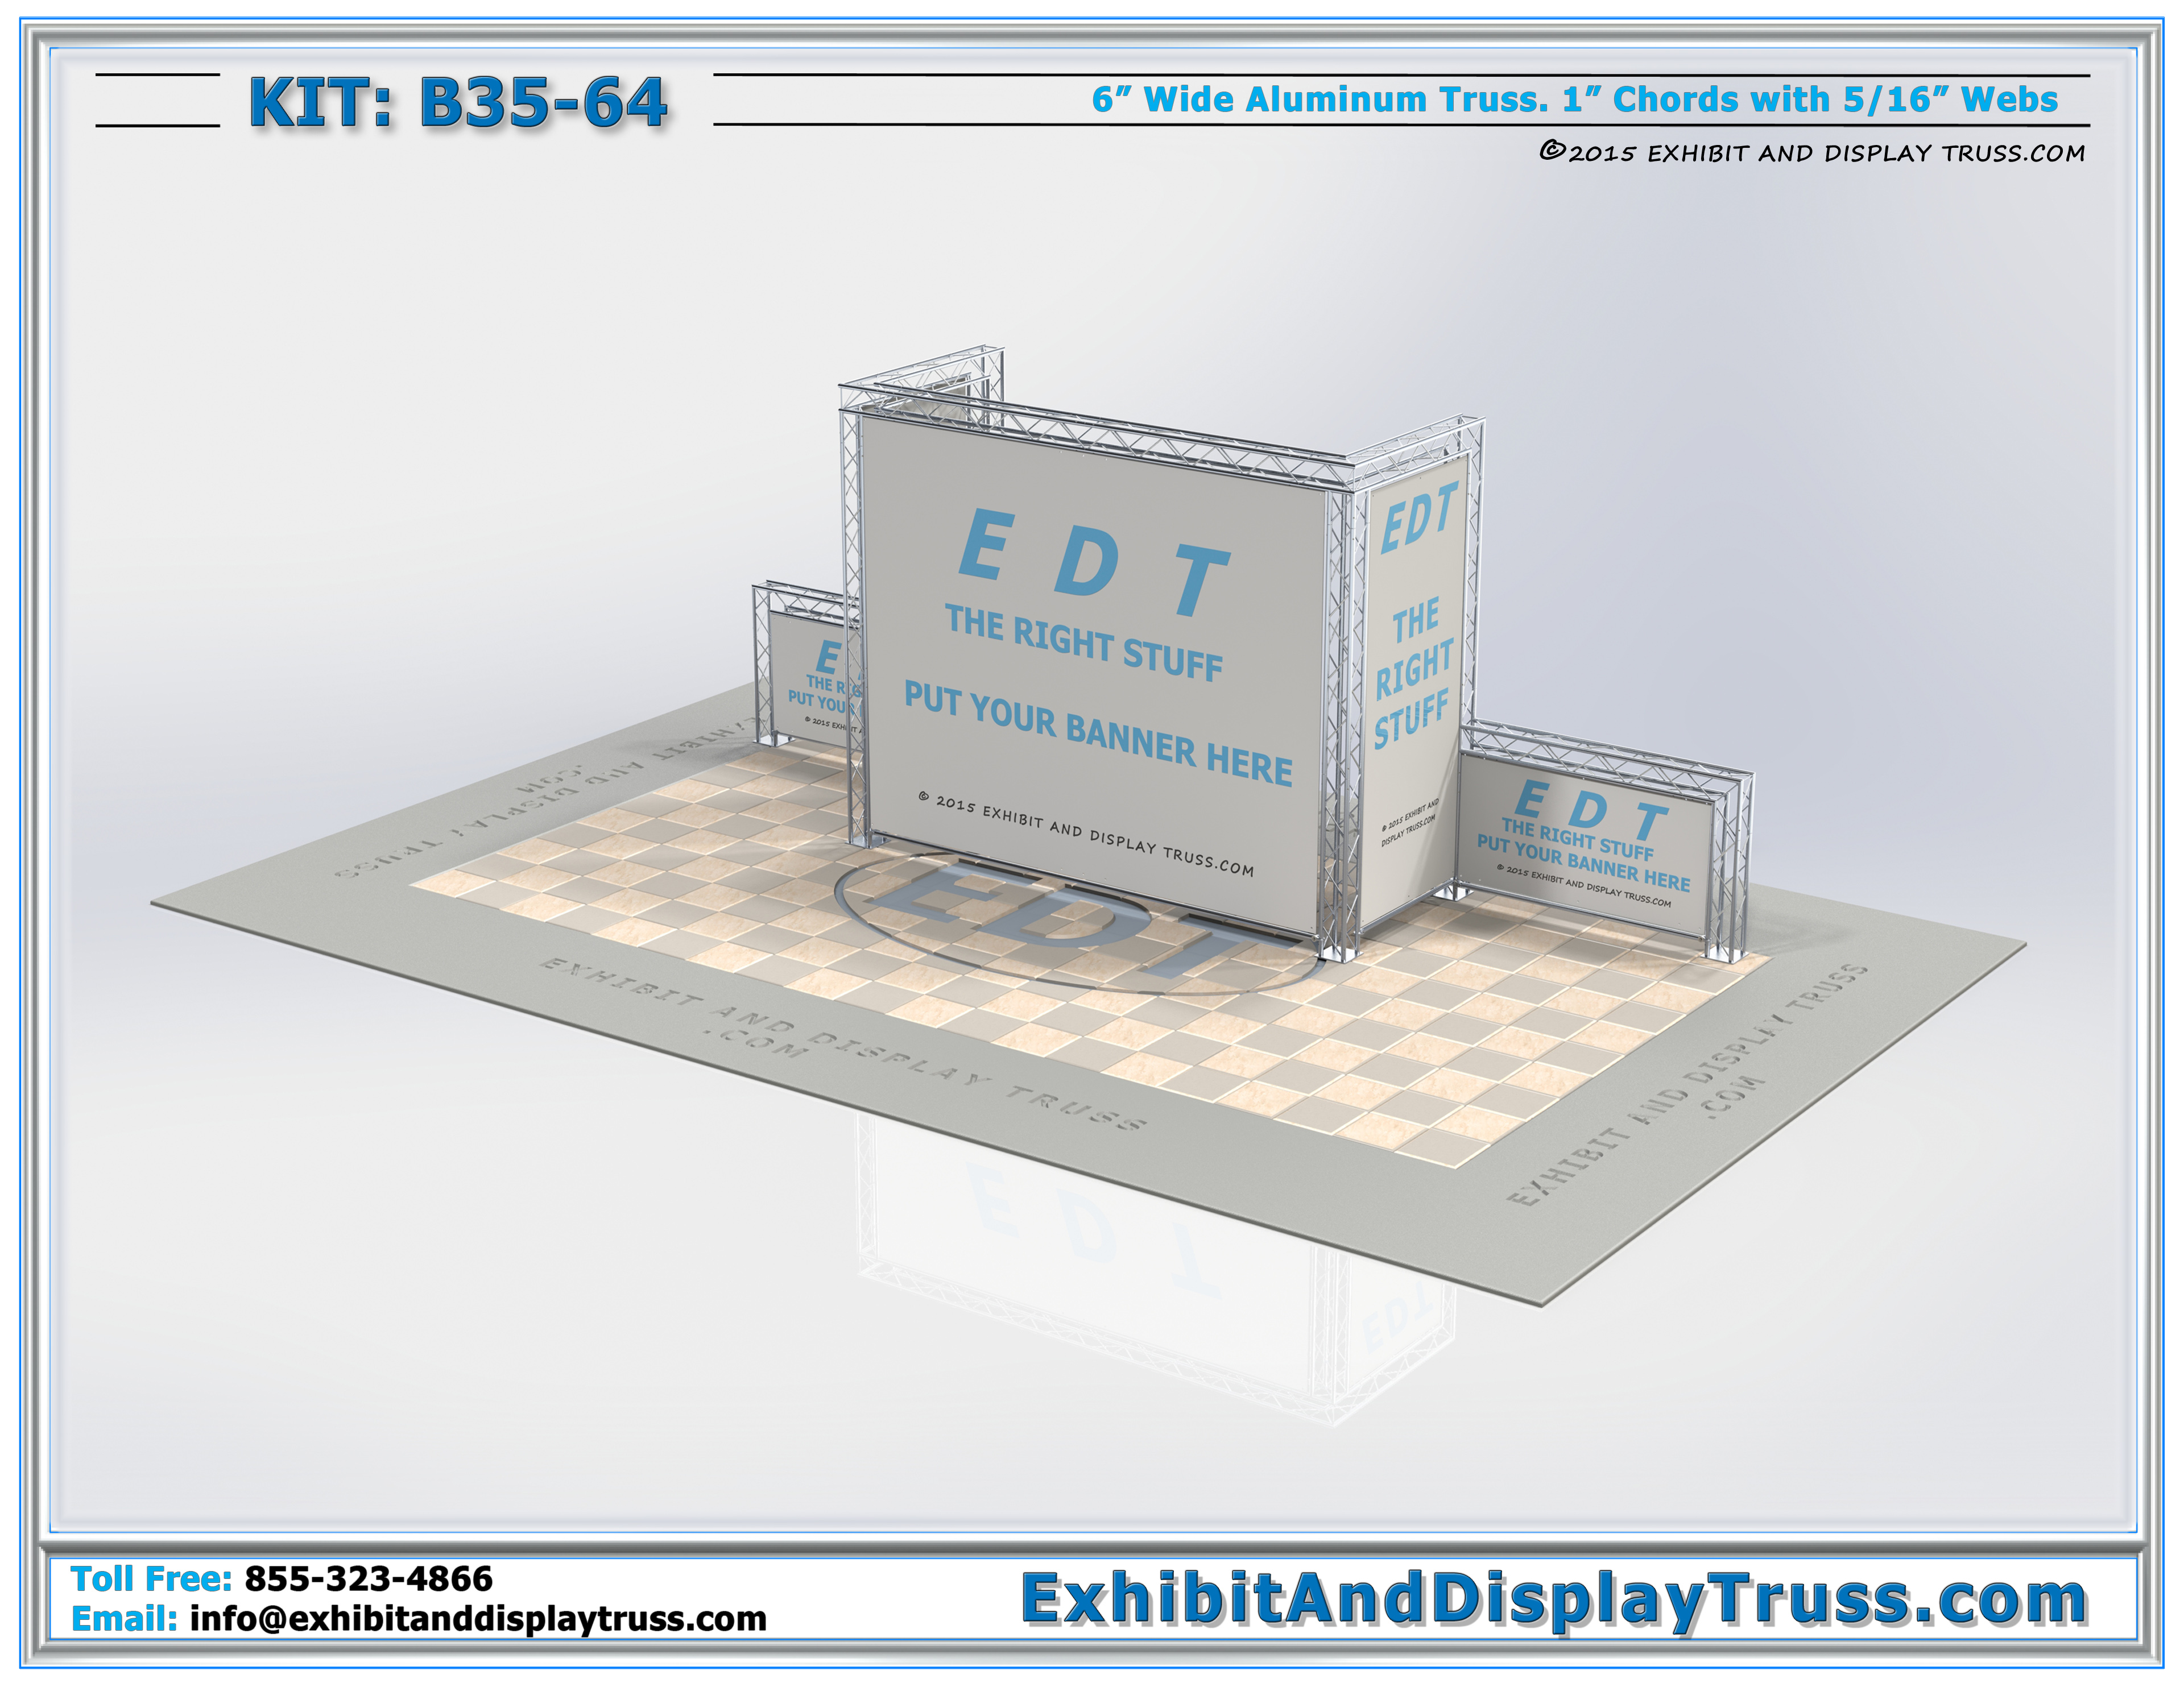 Trade Show Booth Visitors : Exhibit display kits b